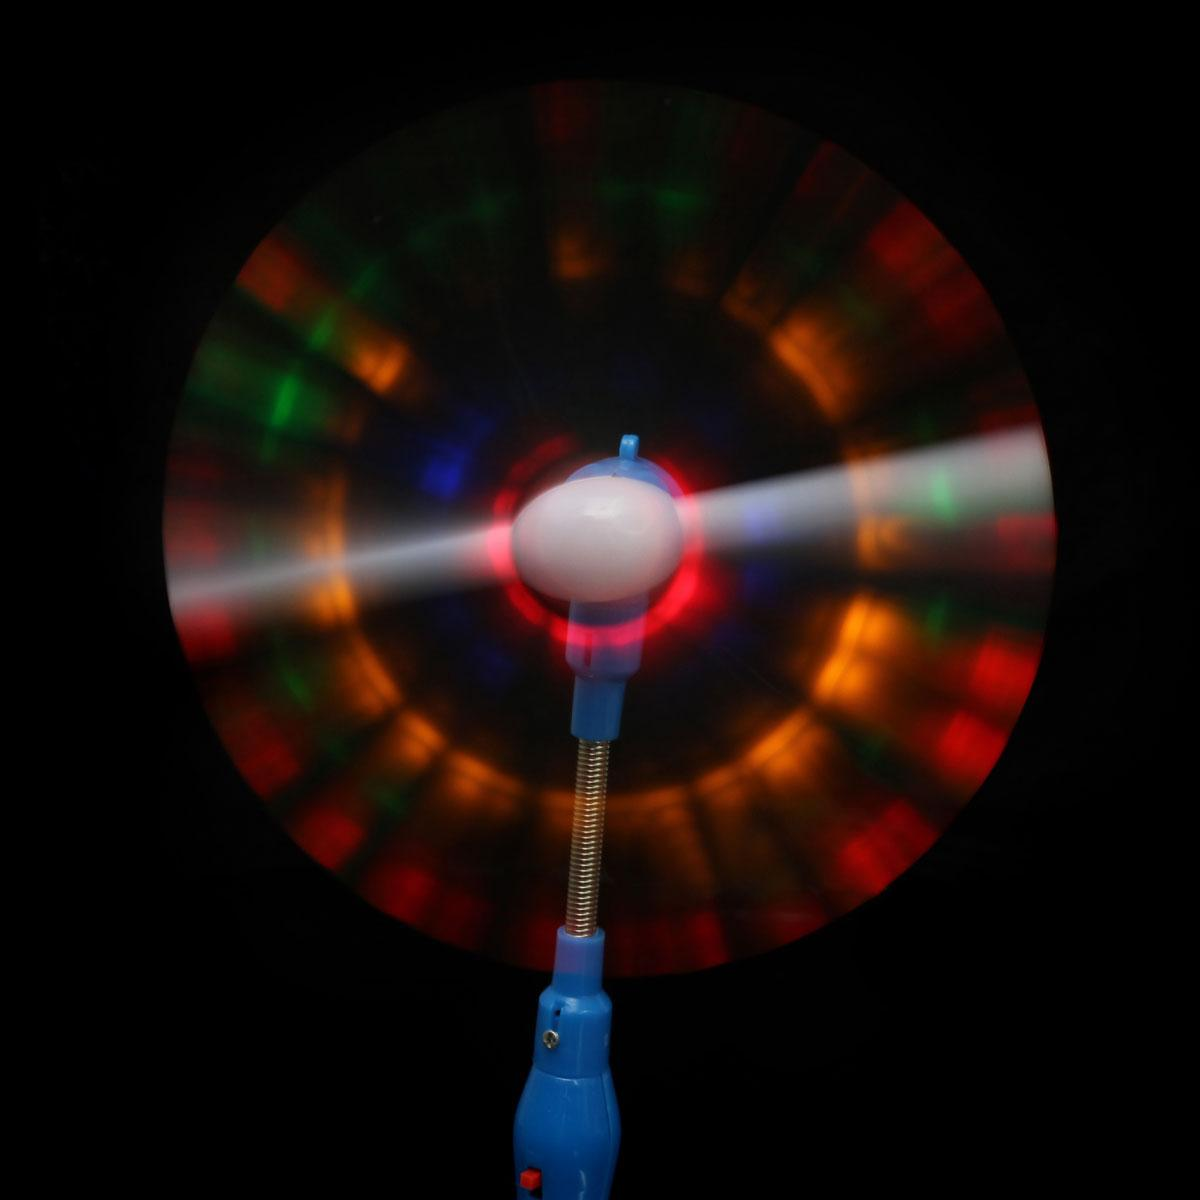 Glows Classic Toys For Children Kids Present Gift LED And Music Rainbow Spinning Windmill Lanlan 1Pcs Windmills Flashing Light Up Toy